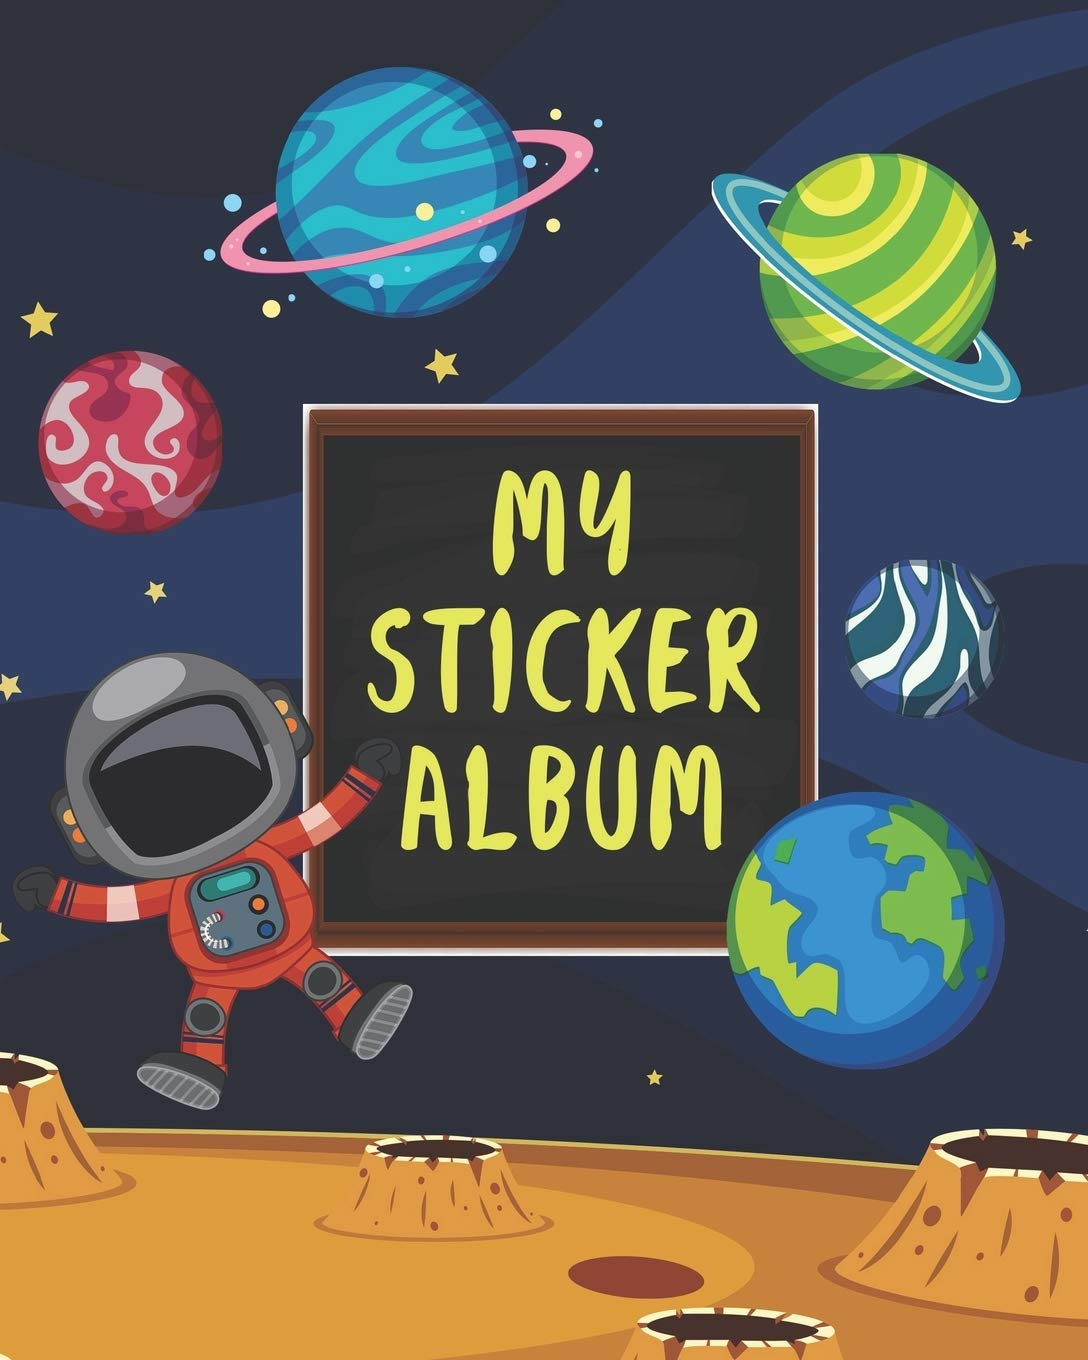 My sticker album: Cute Astronaut & Outer Space Fun Family Activity Books Collecting Stickers Memories Doodling Sketching Drawing - to put in ... Kids Toddlers (Creative Kids Notebook Album)